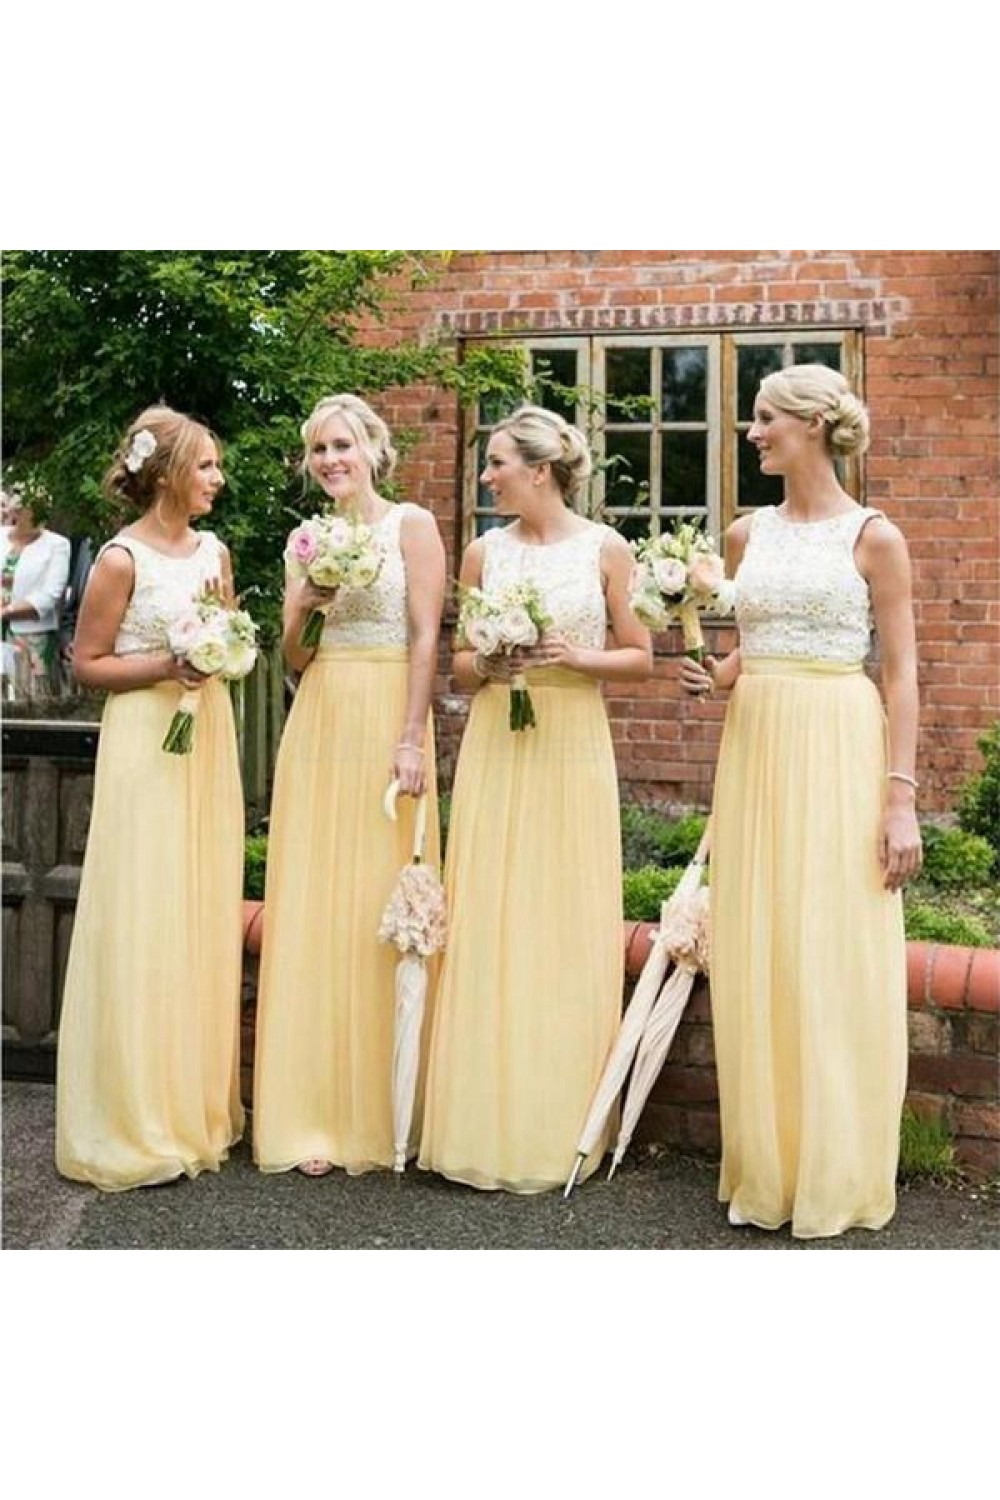 affd1239716 Long Yellow White Lace Wedding Guest Dresses Bridesmaid Dresses ...